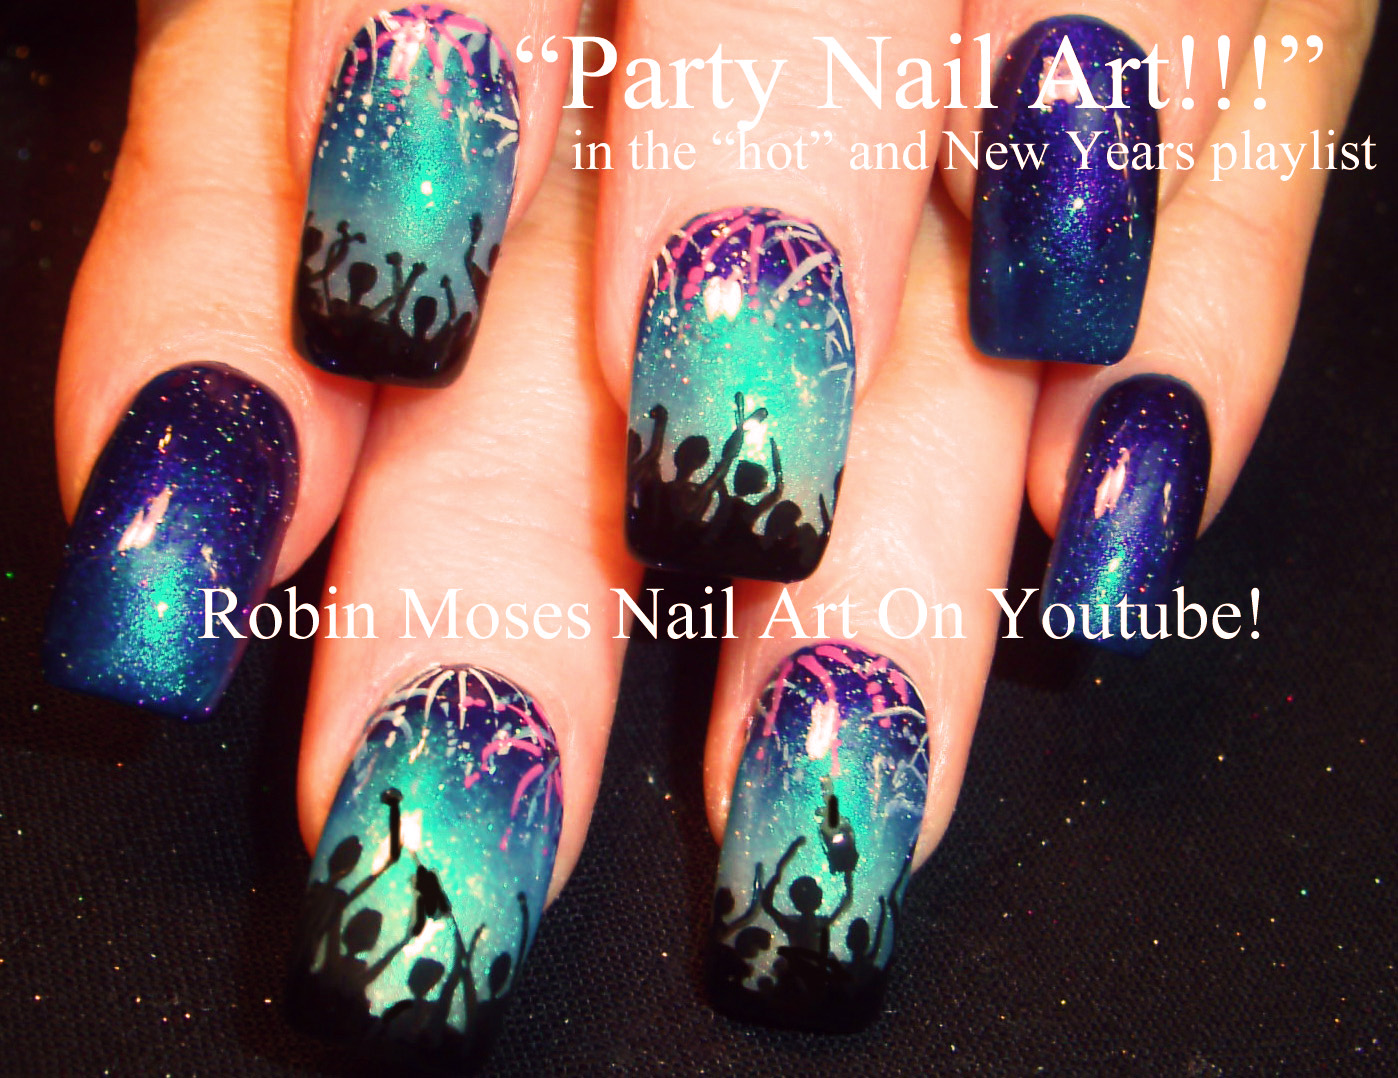 Robin moses nail art 2015 new years nails new year design nye nails nye ideas nye nail art new years ideas new years ideas new year design prinsesfo Image collections